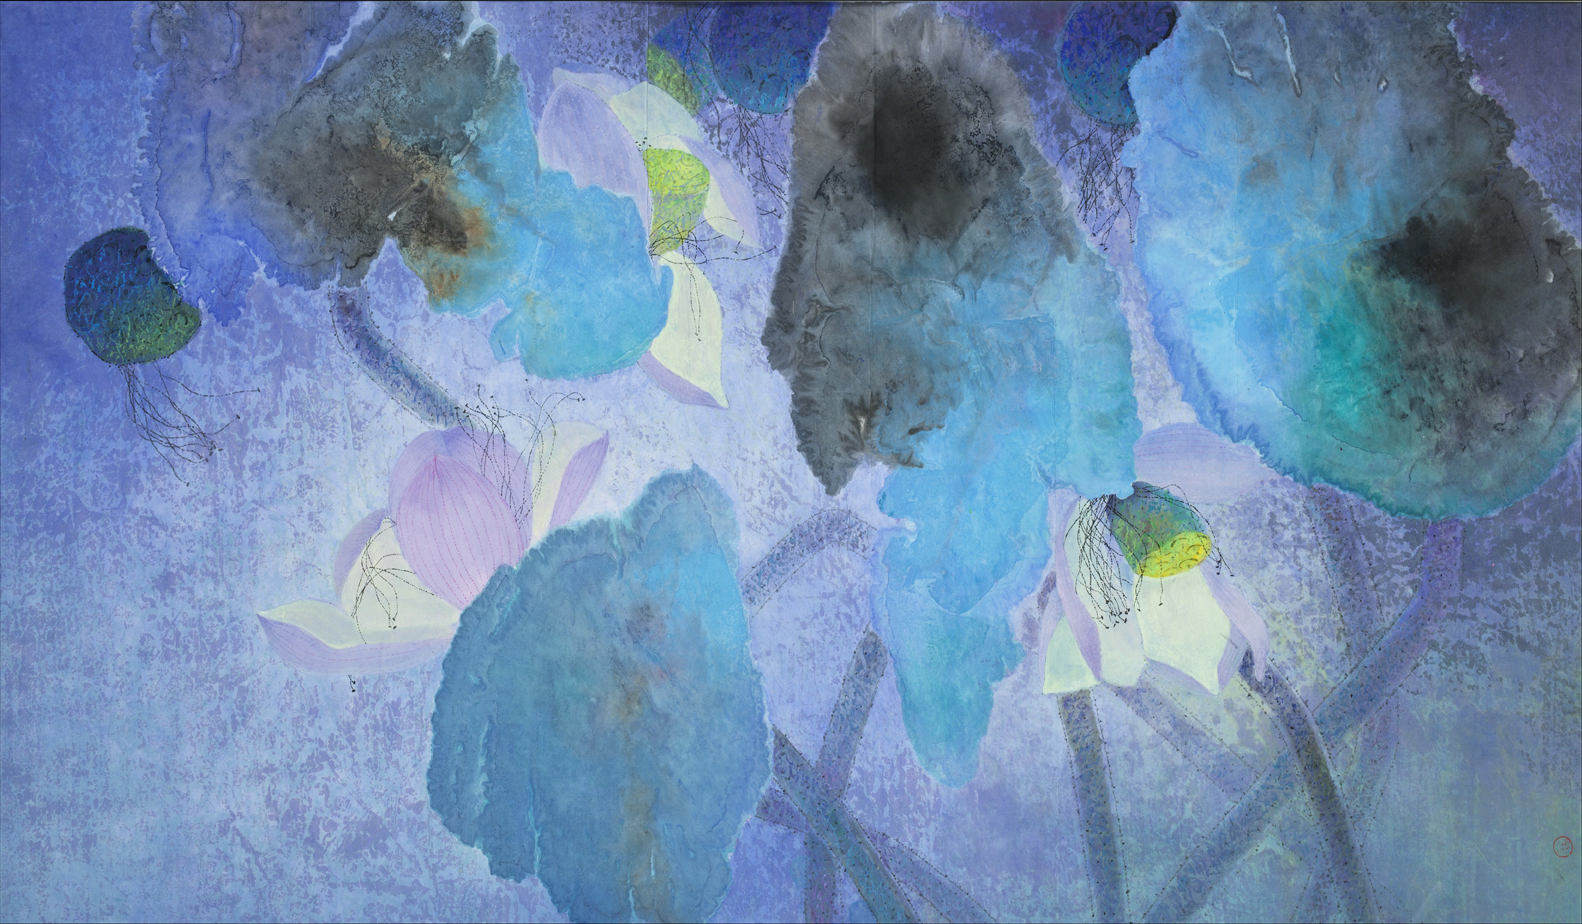 Yang Yanping Scent of Summer Night, 2000 Ink and colour on paper 36 1/4 x 59 (92 x 150 cm)